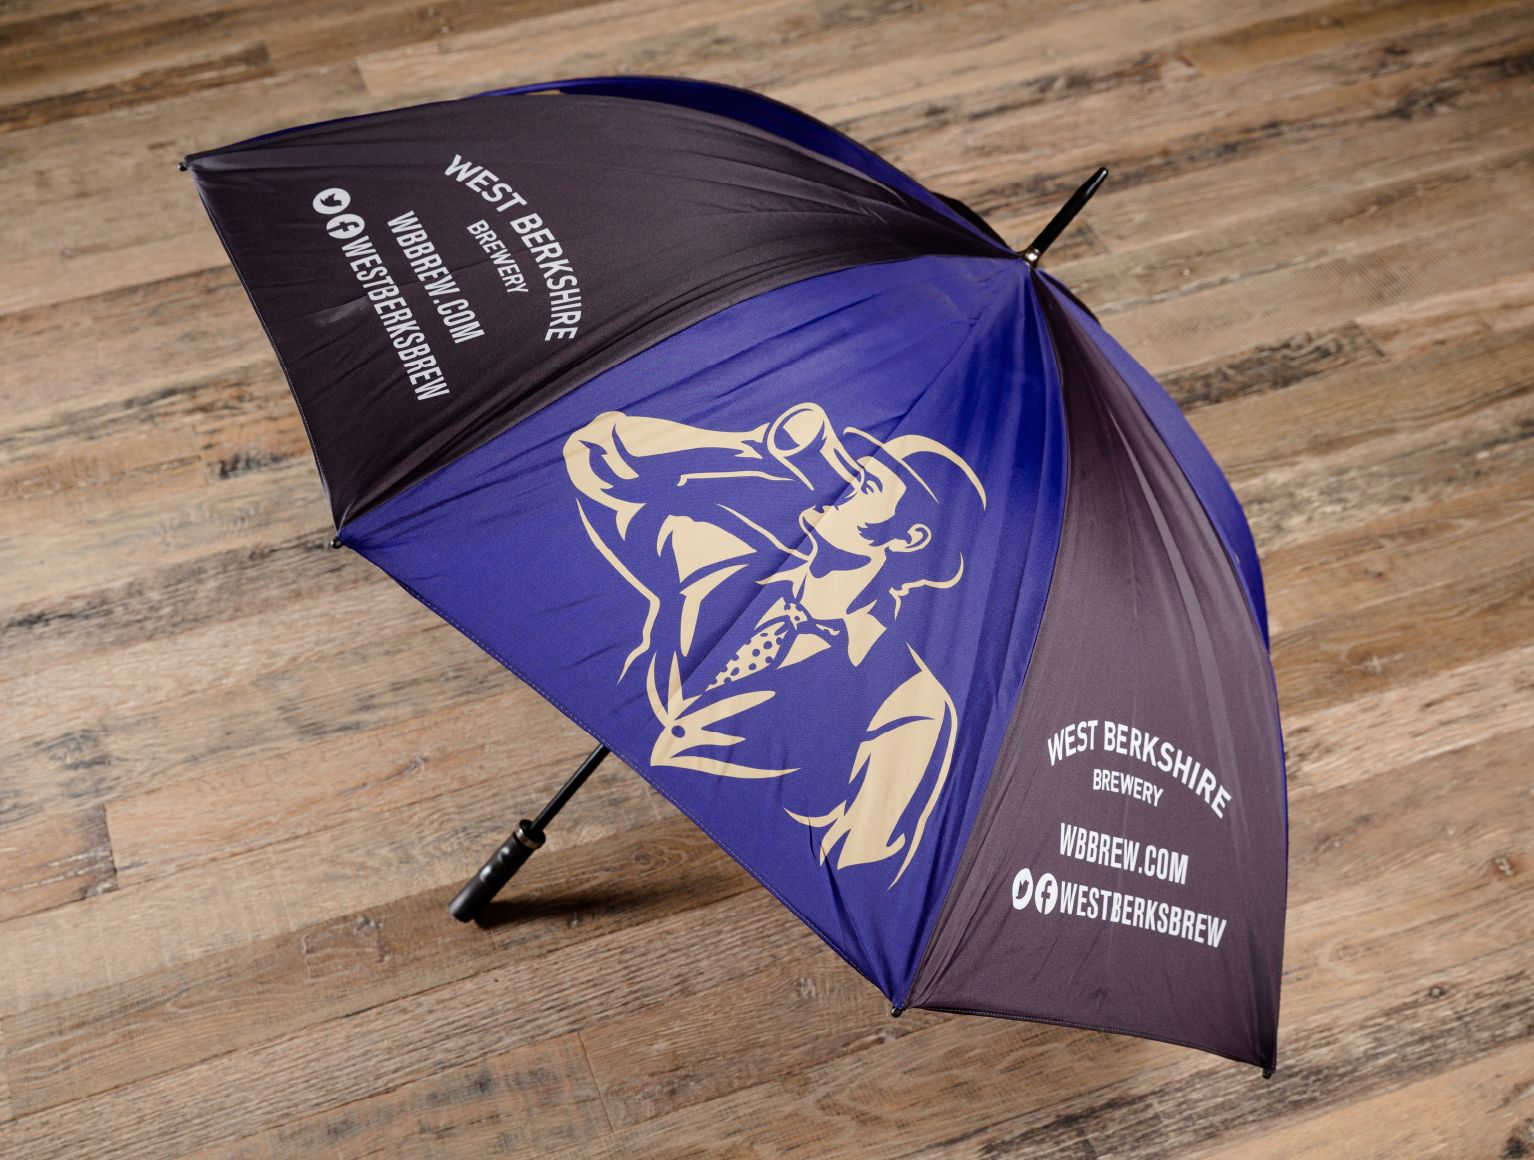 West berkshire brewery Umbrella